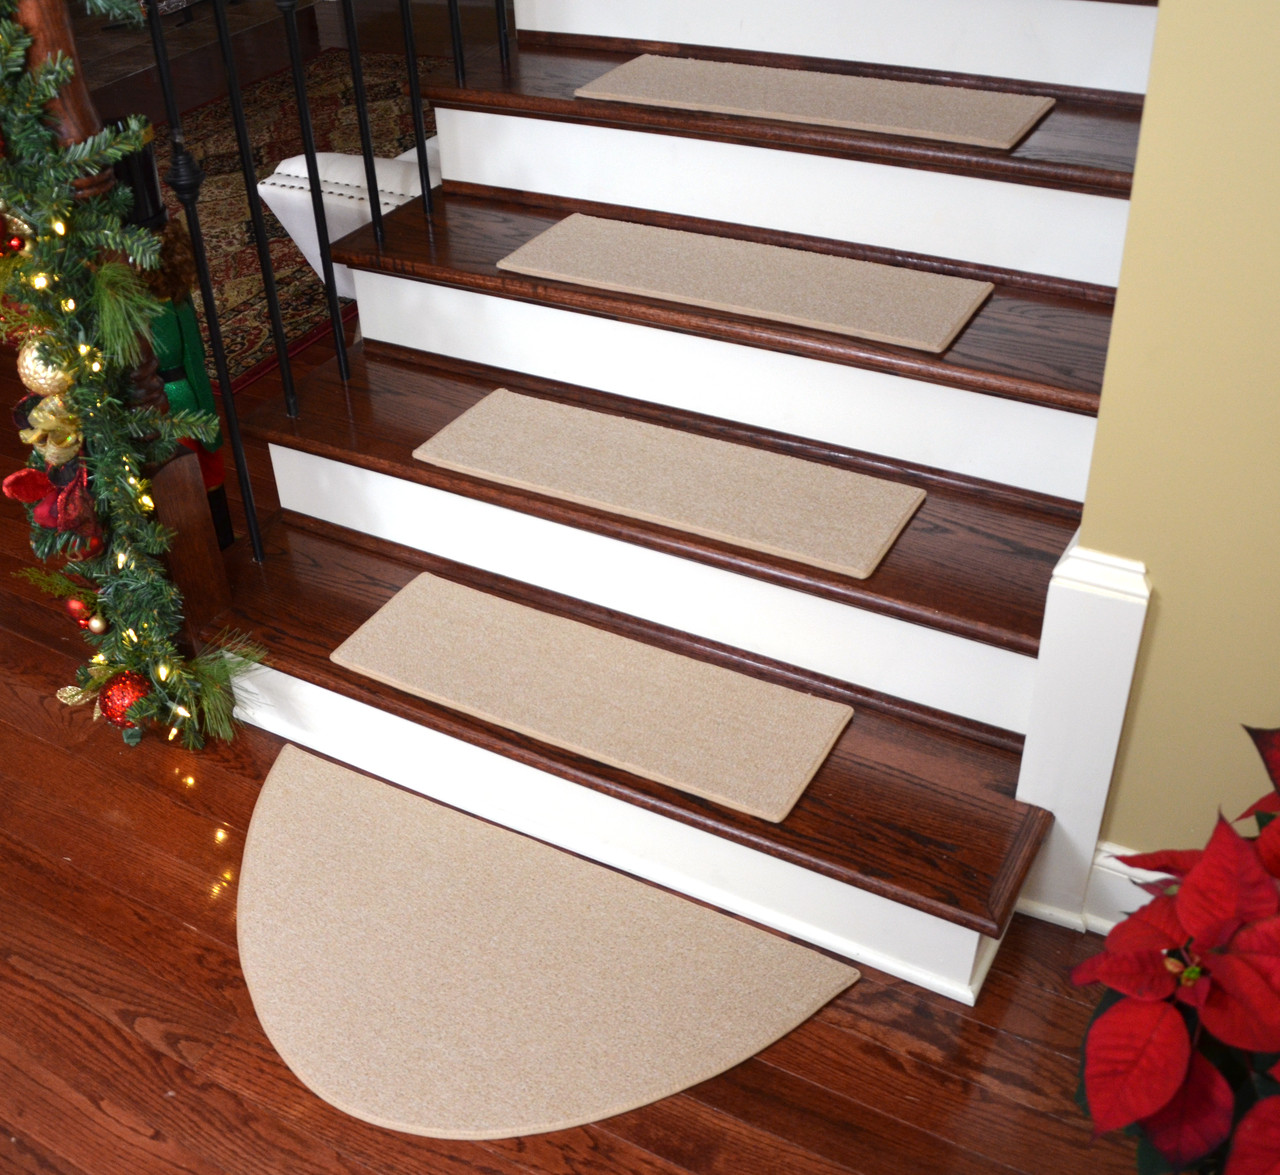 Diy Stair Treads Out Of Flor Tiles: Non-Slip, Tape-Free DIY Stair Treads